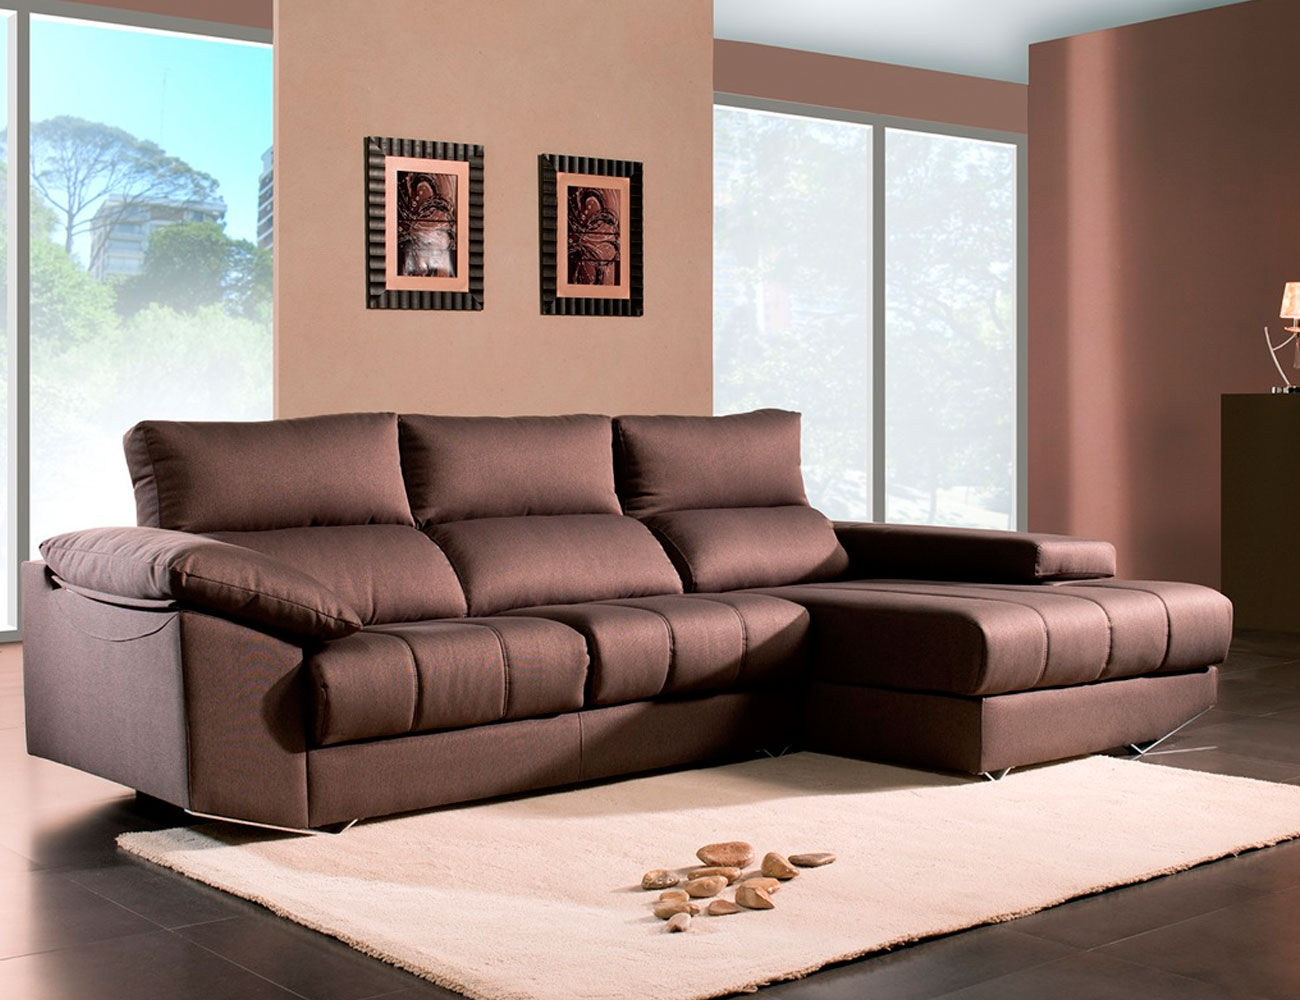 Sofa chaiselongue moderno brazo mecanico8